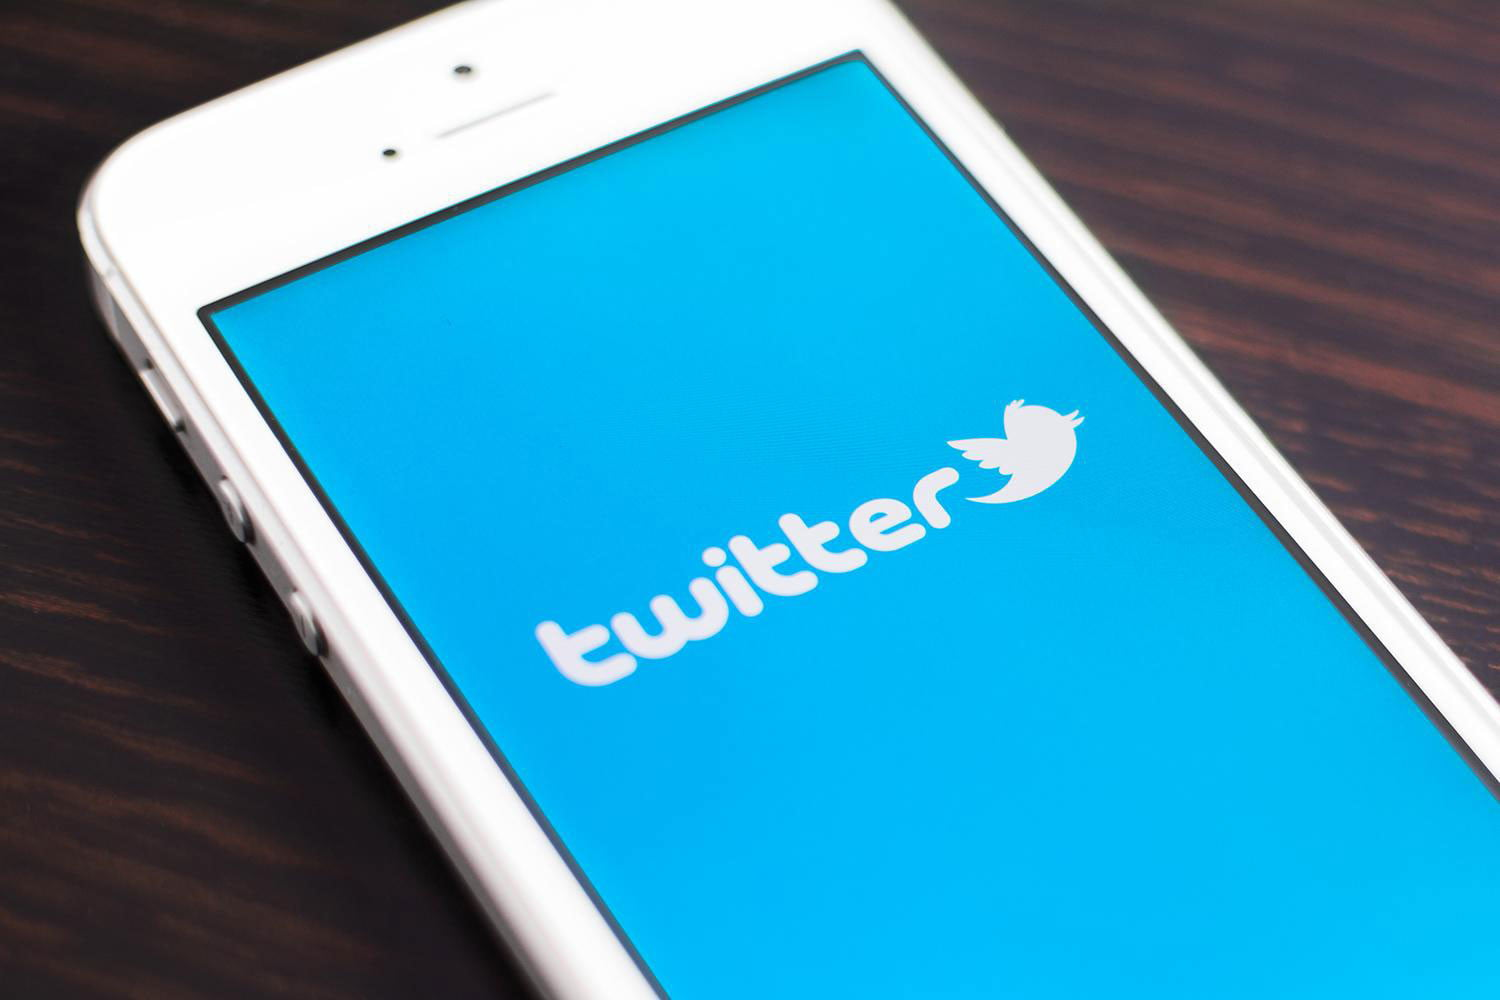 Twitter finally launches its 'Highlights' feature for iOS users | Digital  Trends